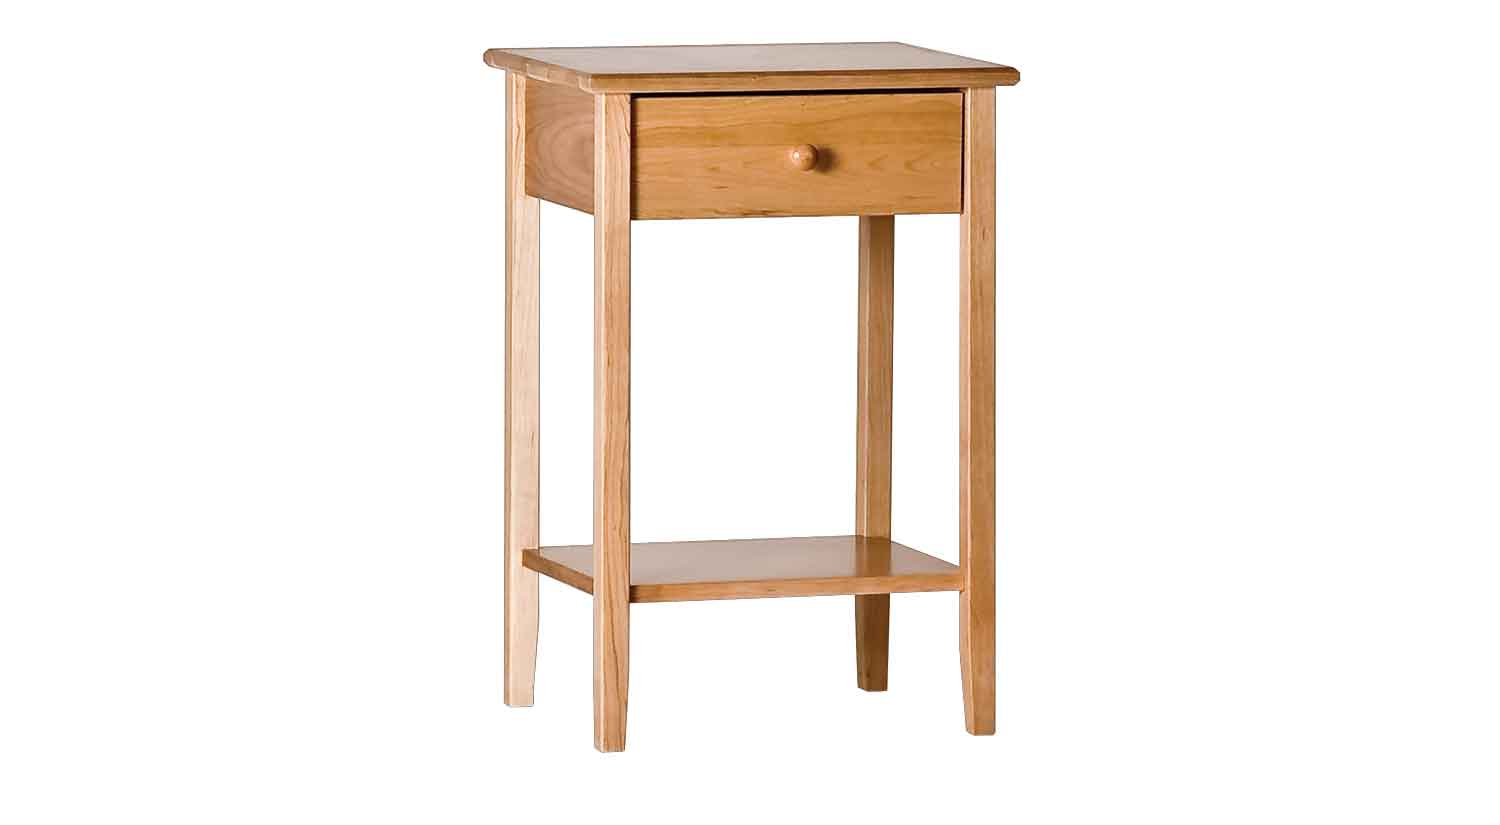 circle furniture shaker tall side table accent tables small narrow glass wood and mirrored bedside woodland contemporary console country end mirage cabinet beach house furnishings